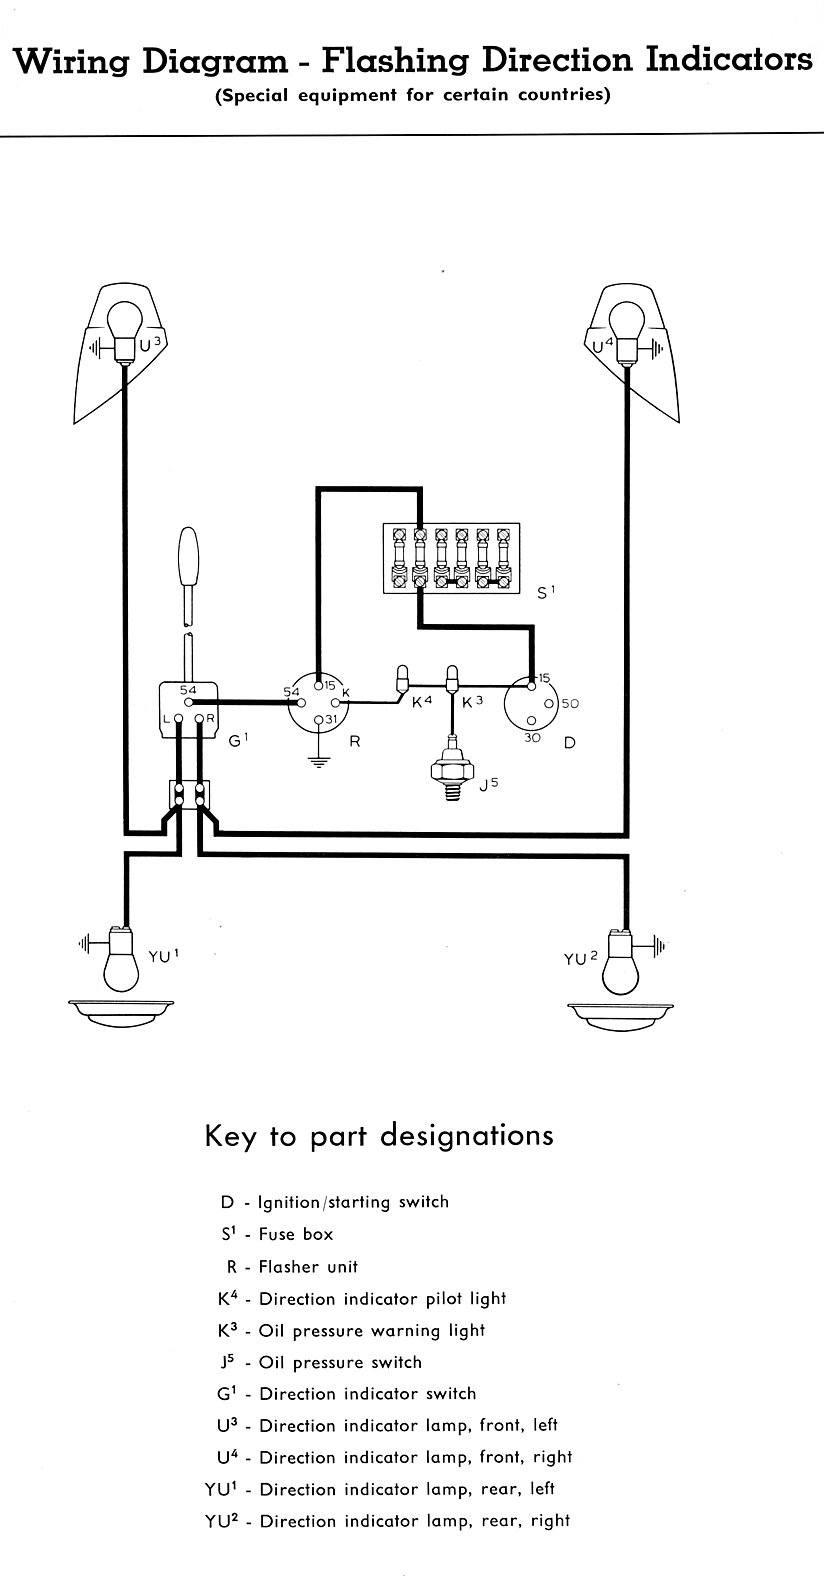 thesamba type 2 wiring diagrams